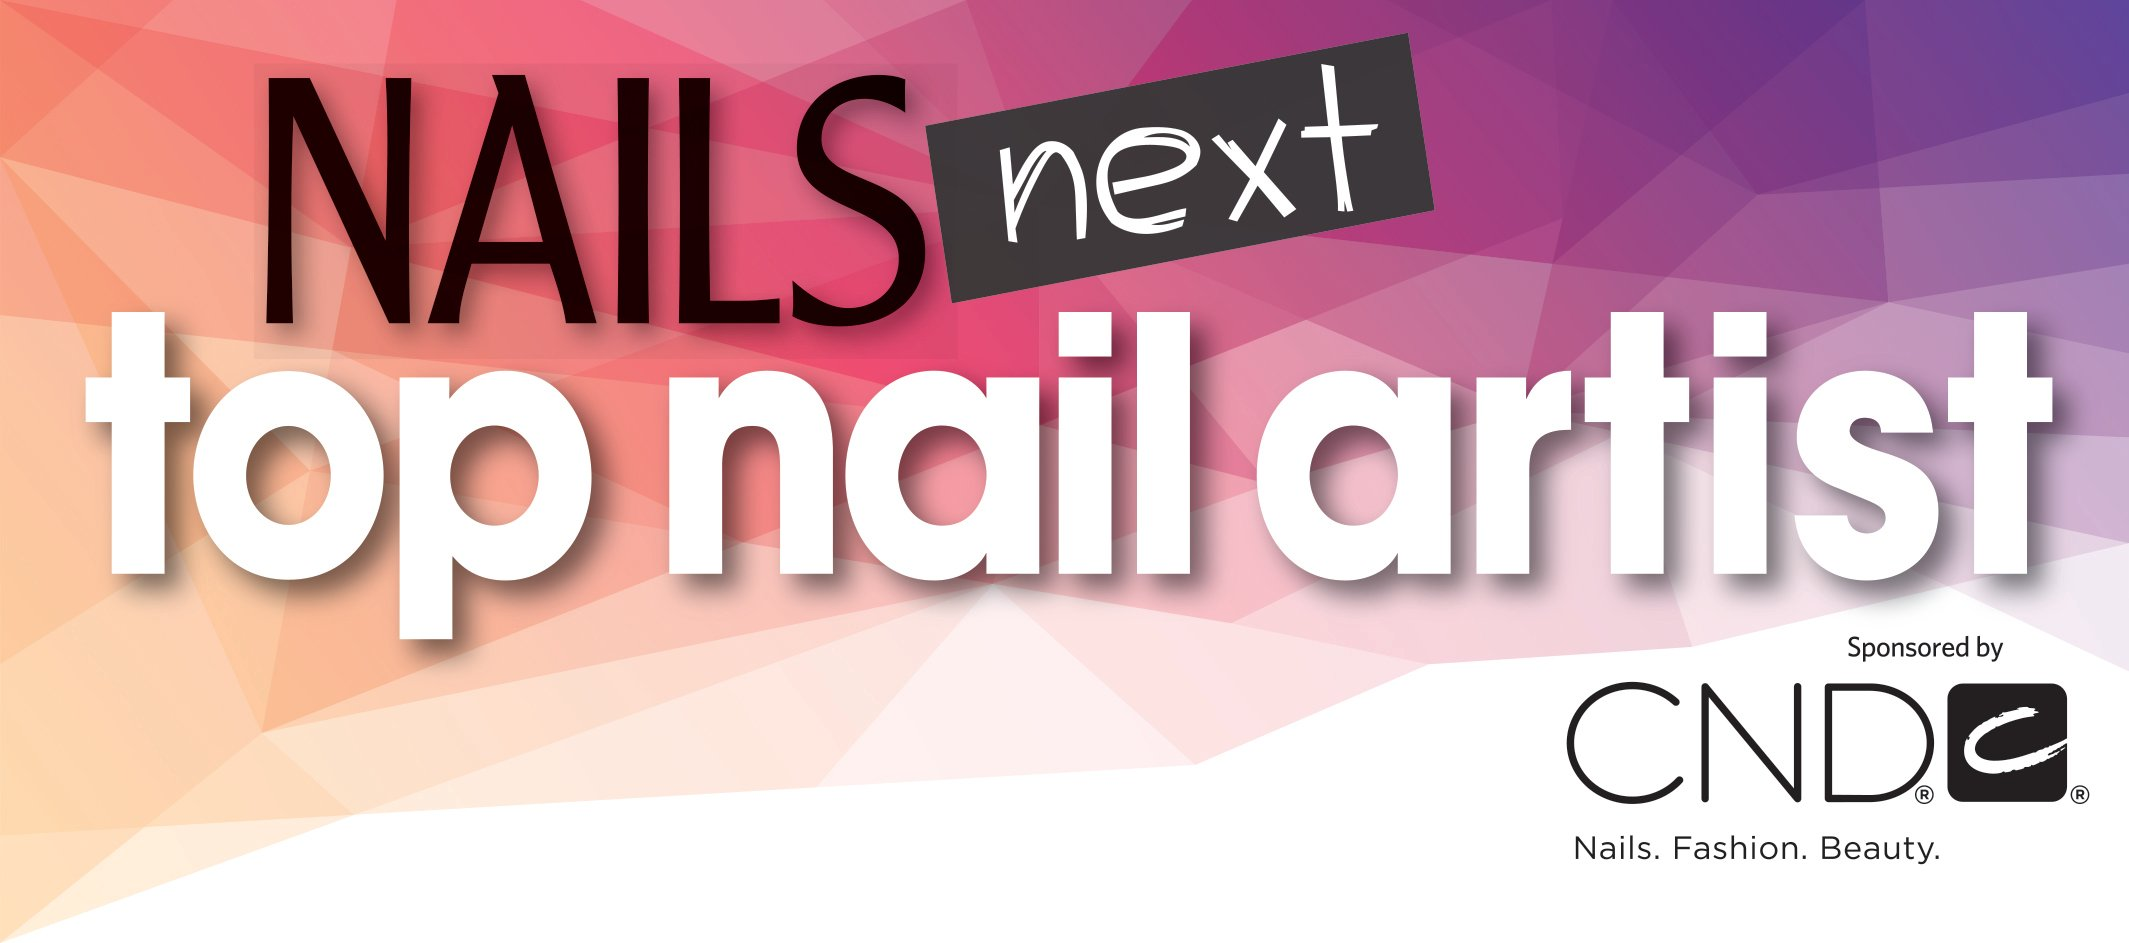 Could One of Your Recent Grads Be NAILS' Next Top Nail Artist?